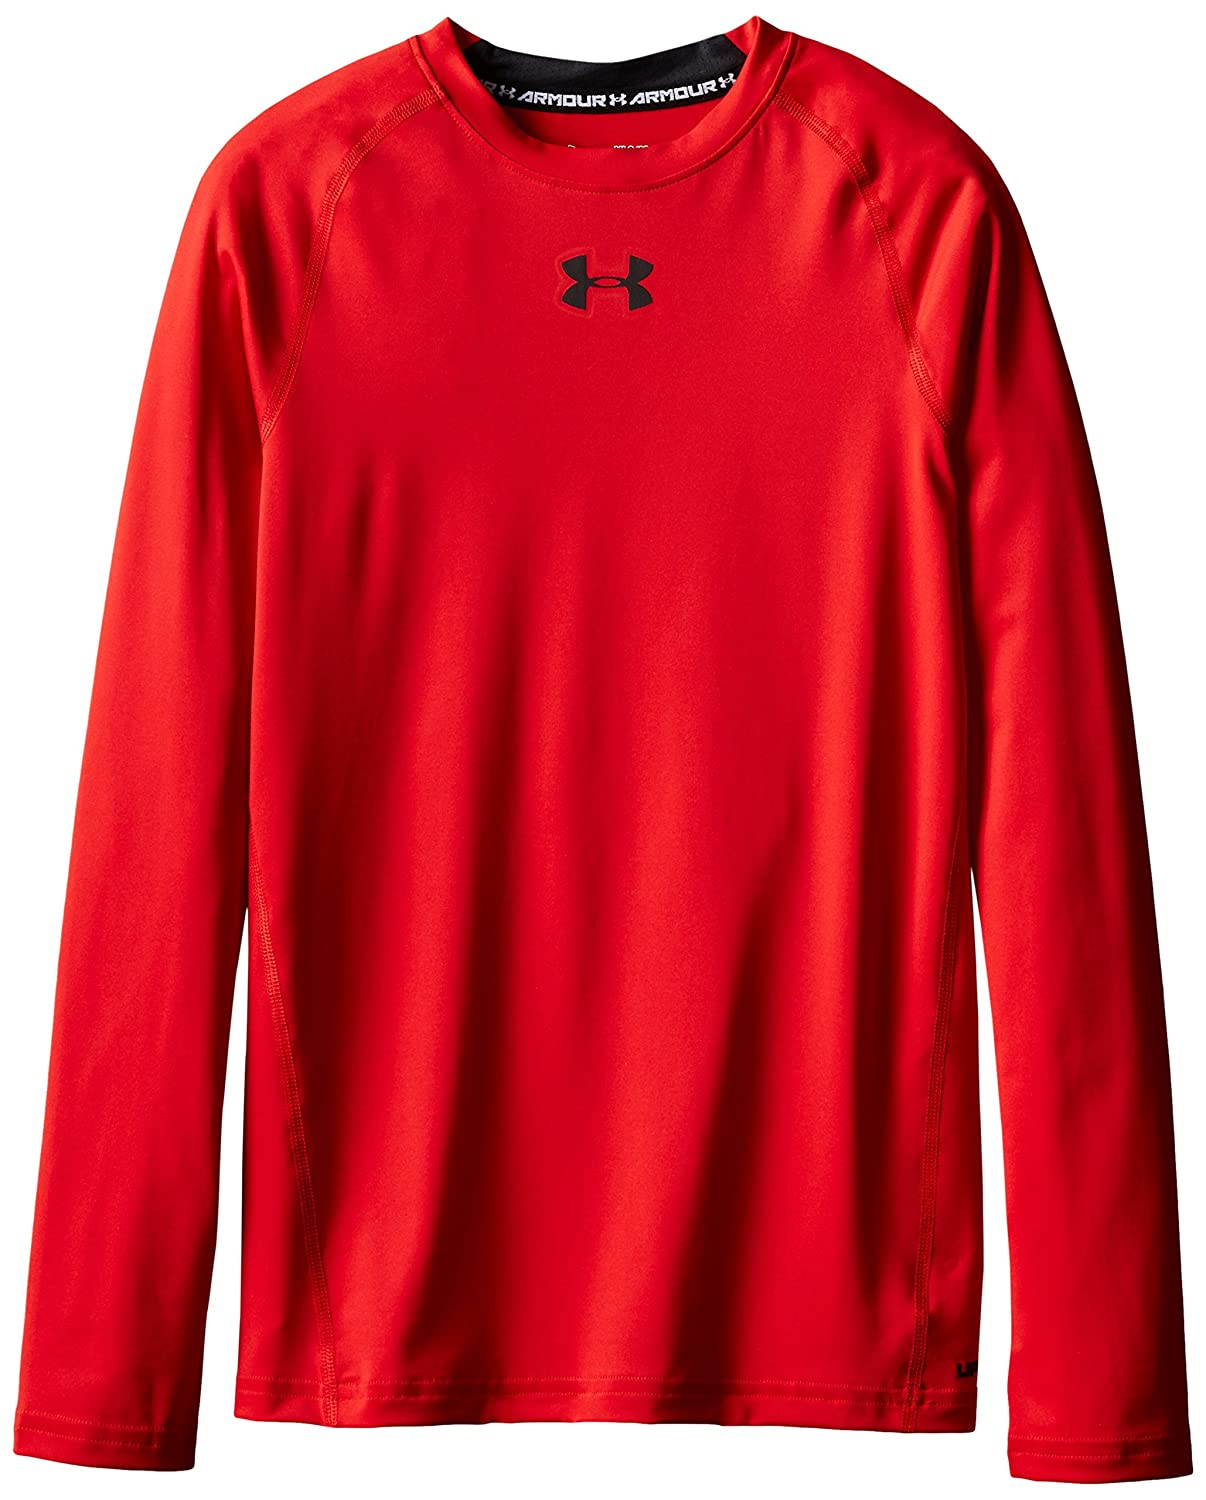 Under Armour, Armour Ls T, Maglia A Maniche Lunghe, Bambino, Rosso, XS 1253816 1253816_601-YXS